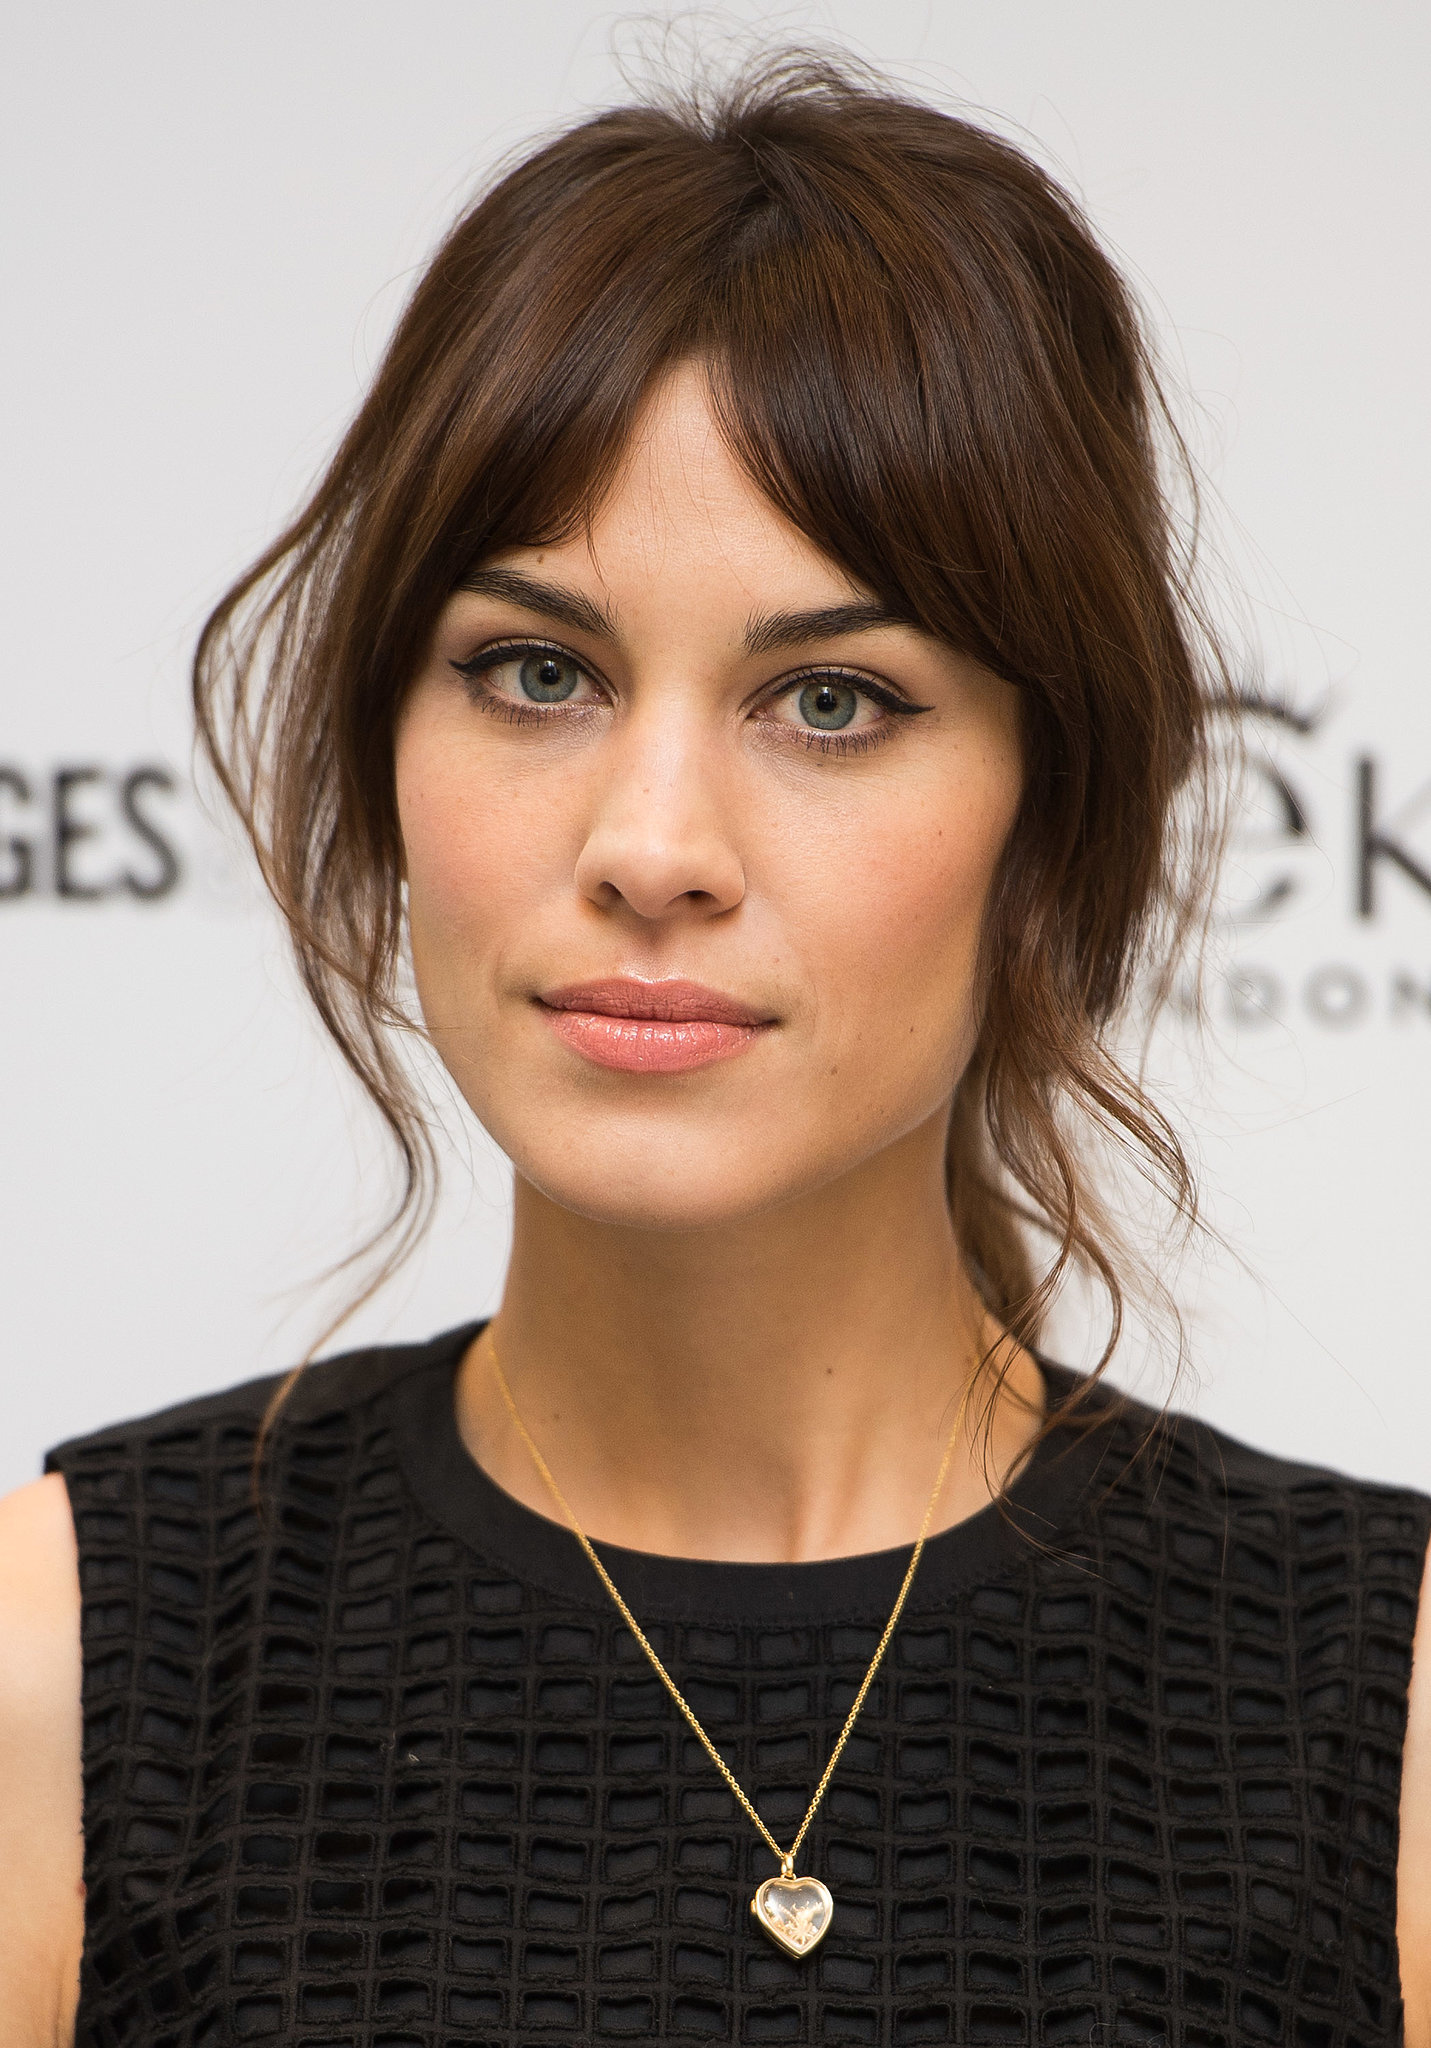 Young Alexa Chung nudes (28 photo), Sexy, Is a cute, Instagram, swimsuit 2018